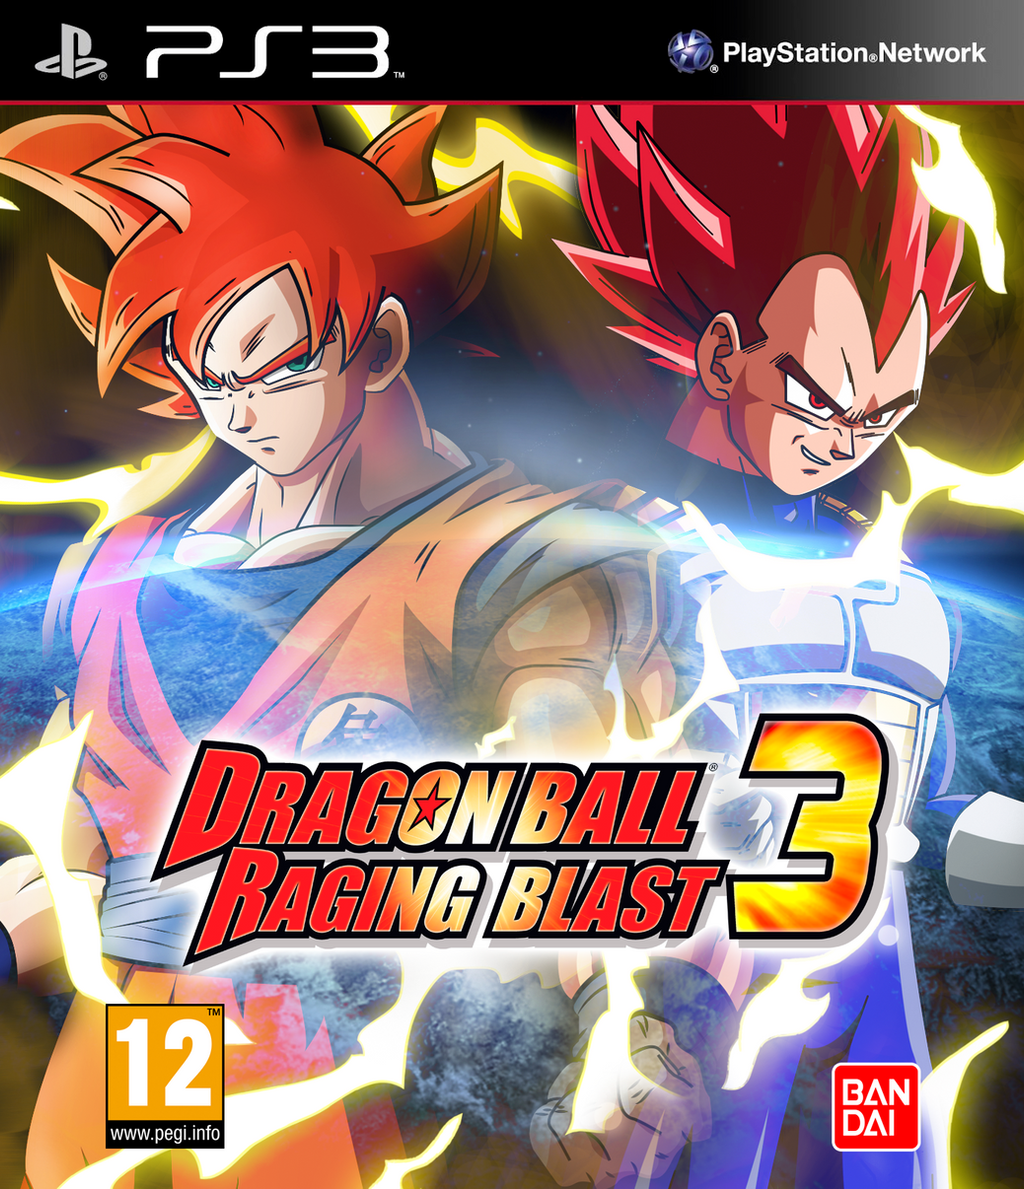 Screens Zimmer 1 angezeig: dragon ball raging blast 2 pc download